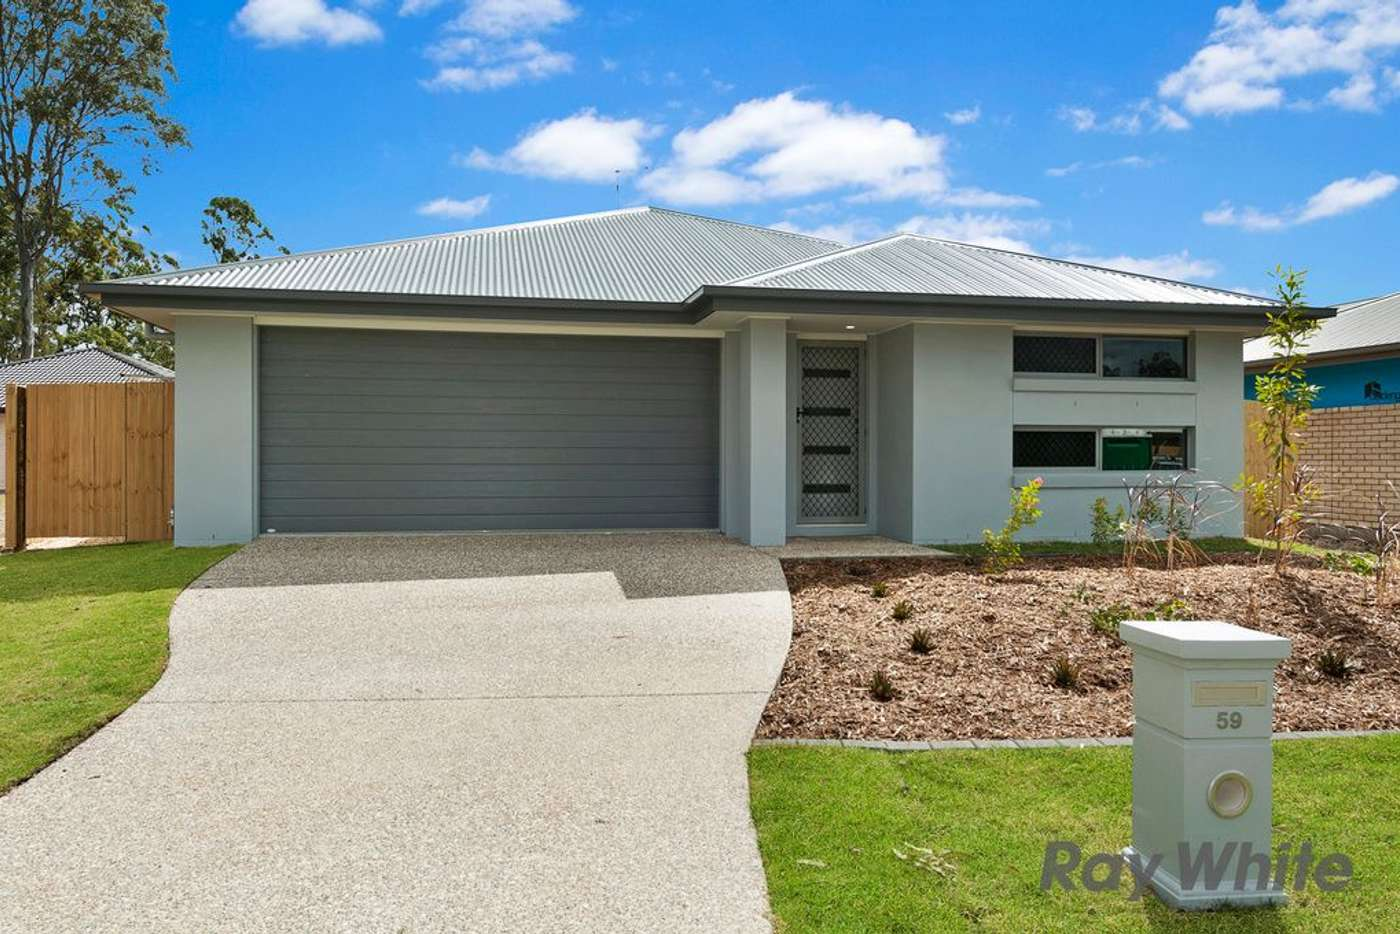 Main view of Homely house listing, 59 Emerson Road, Bannockburn QLD 4207